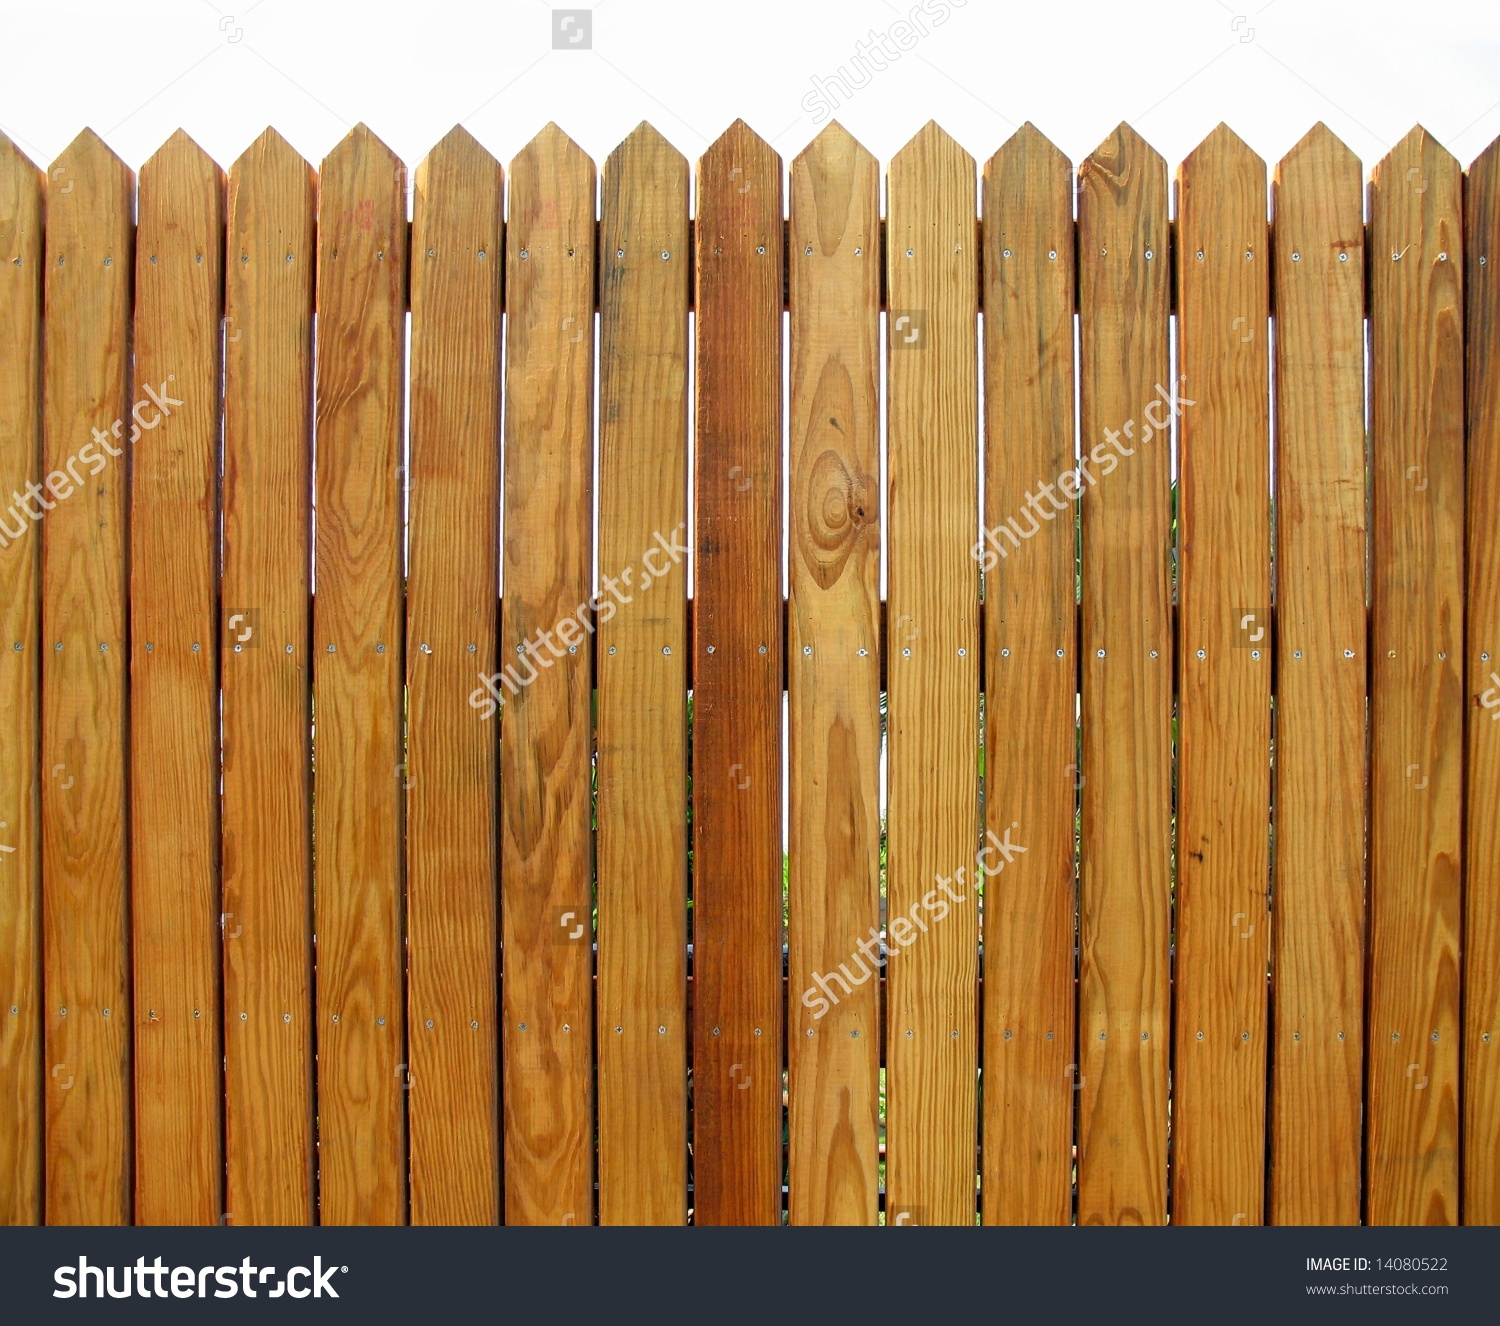 Wooden Fence Slats That Show Natural Stock Photo 14080522.